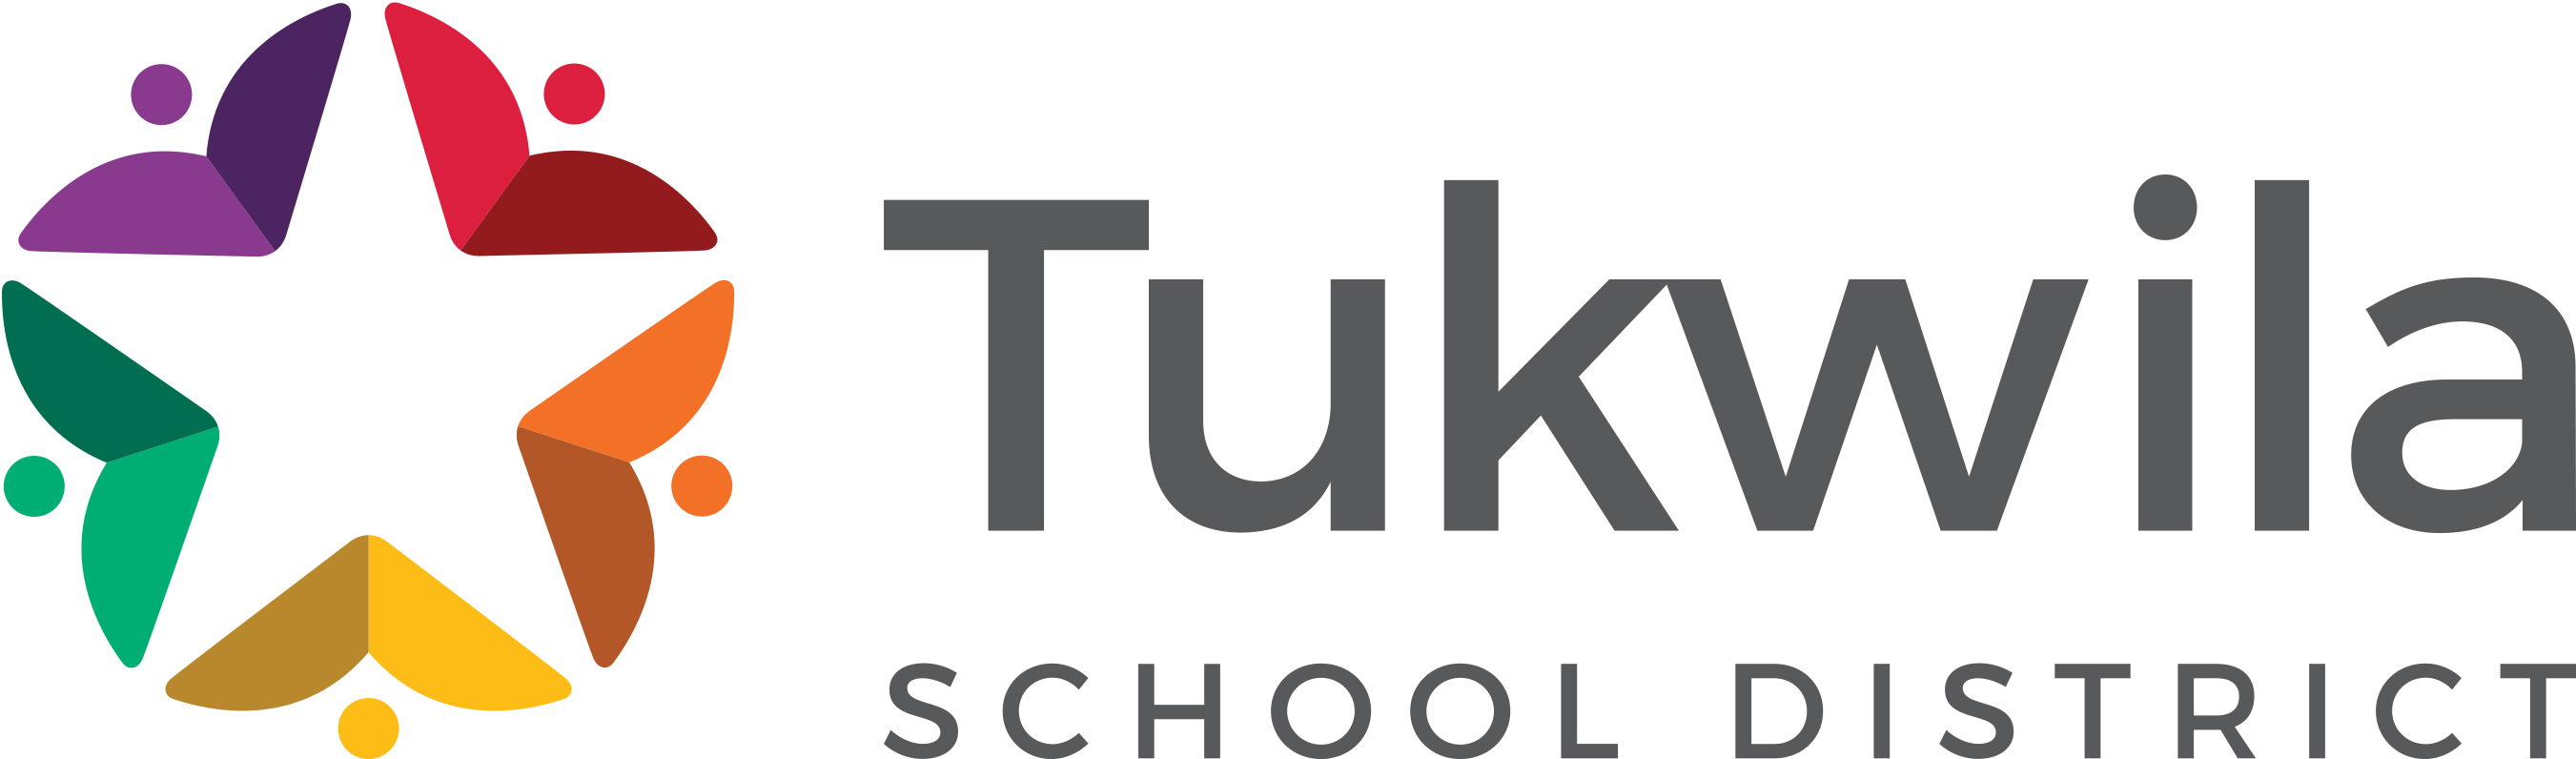 Tukwila School District